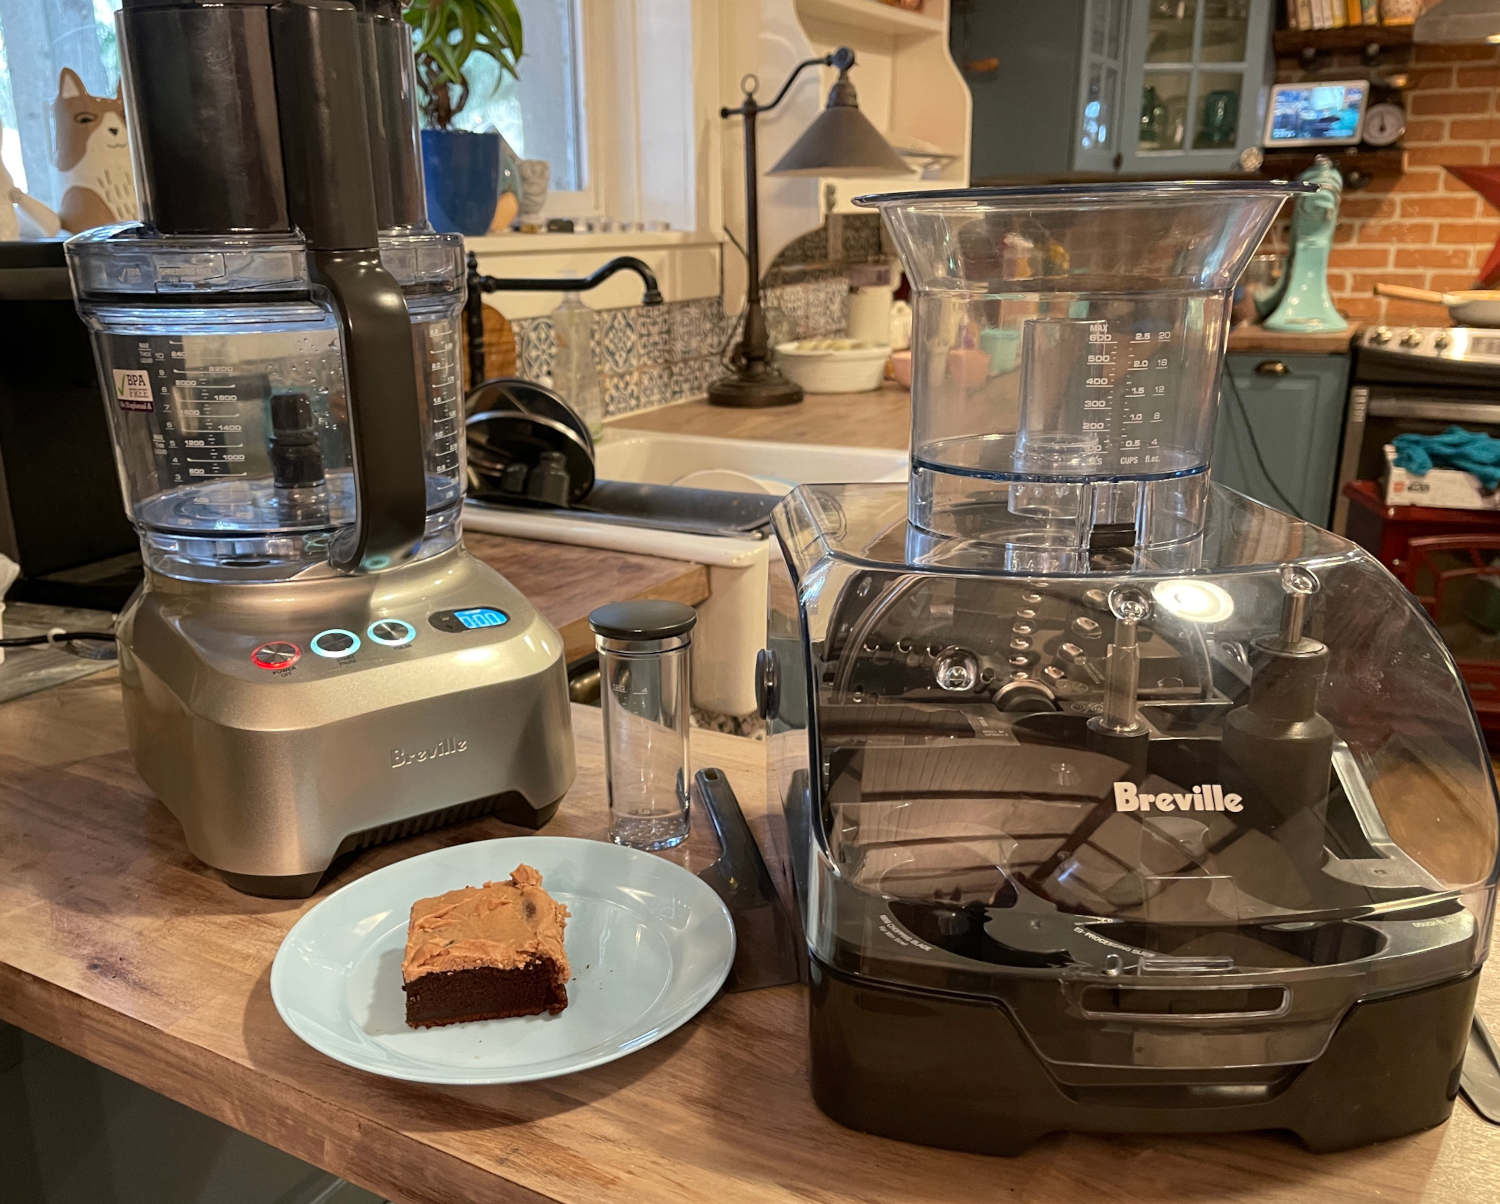 Breville Sous Chef chocolate cake